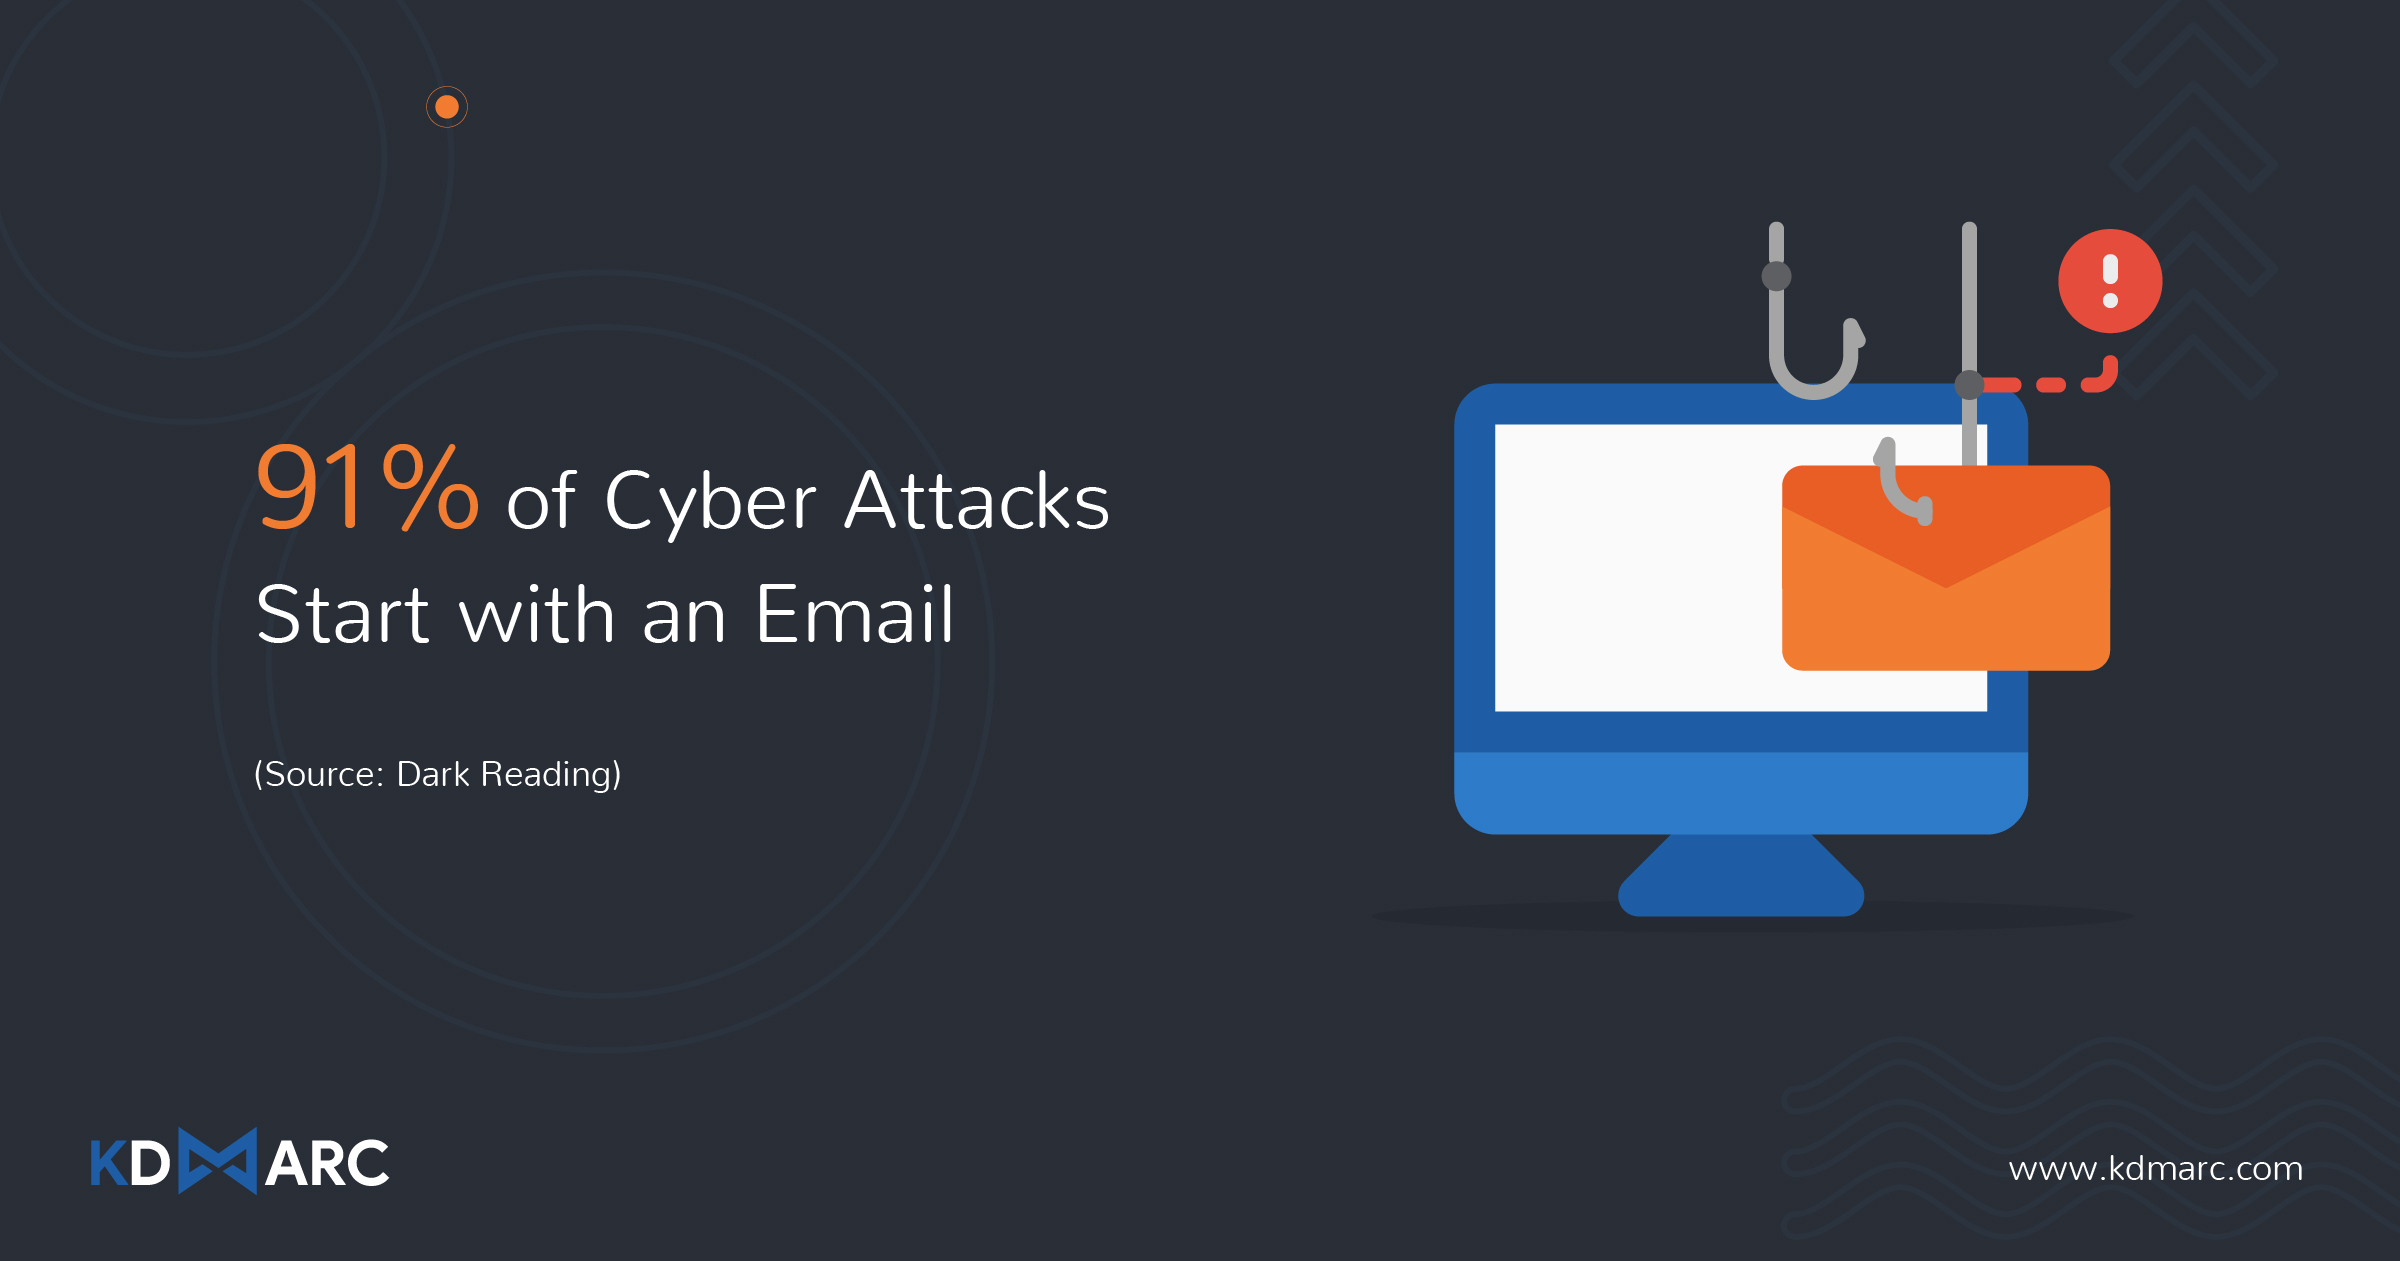 Email attacks